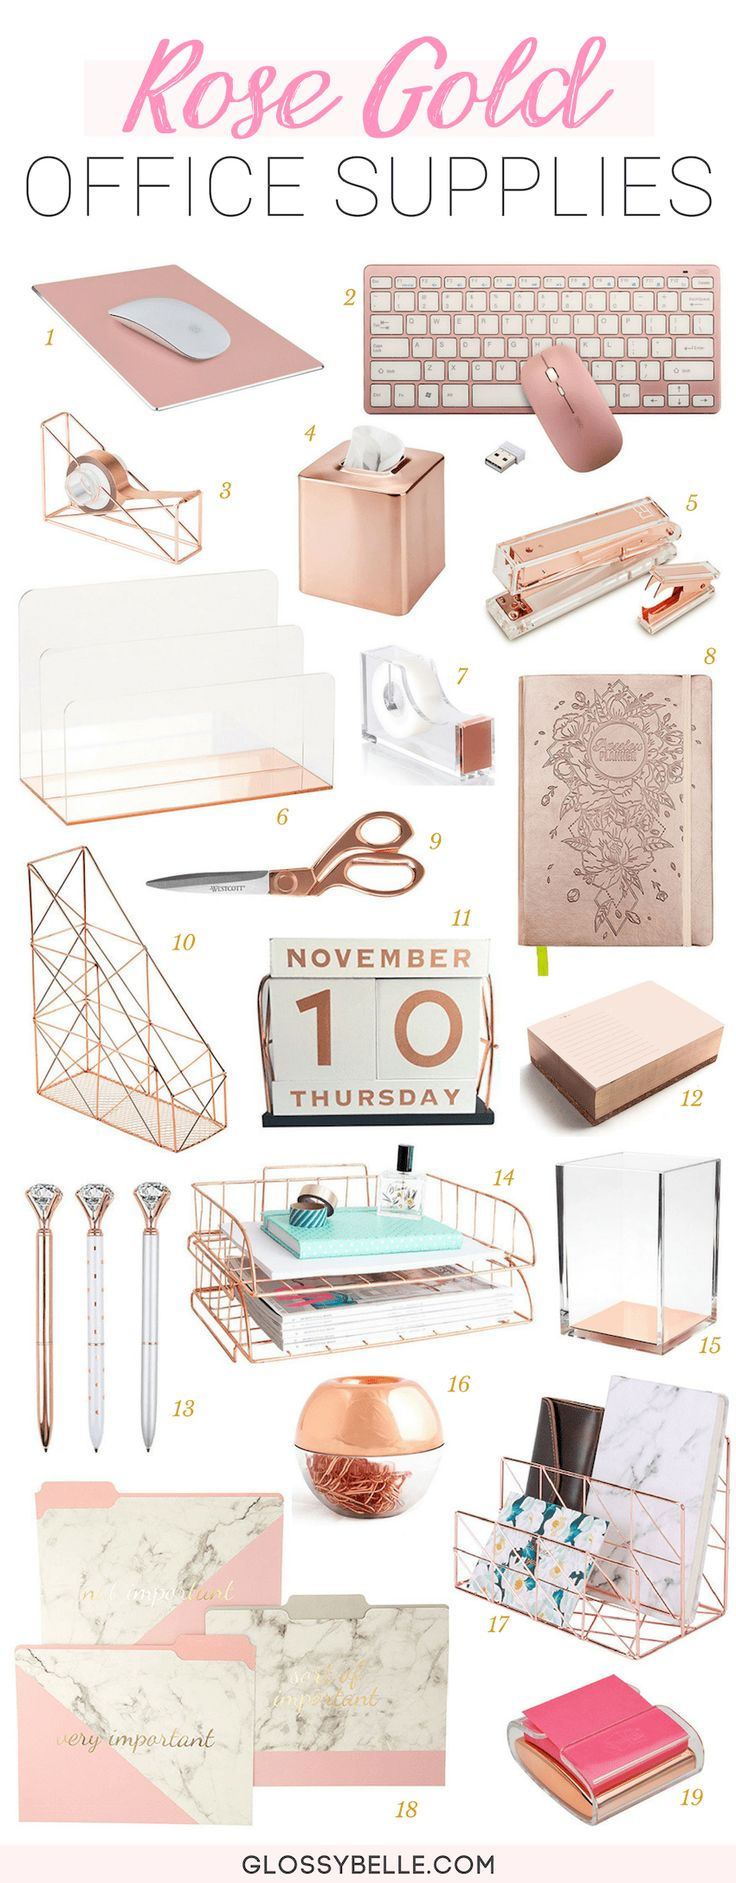 The Ultimate List Of Rose Gold Office Supplies & Desk Accessories